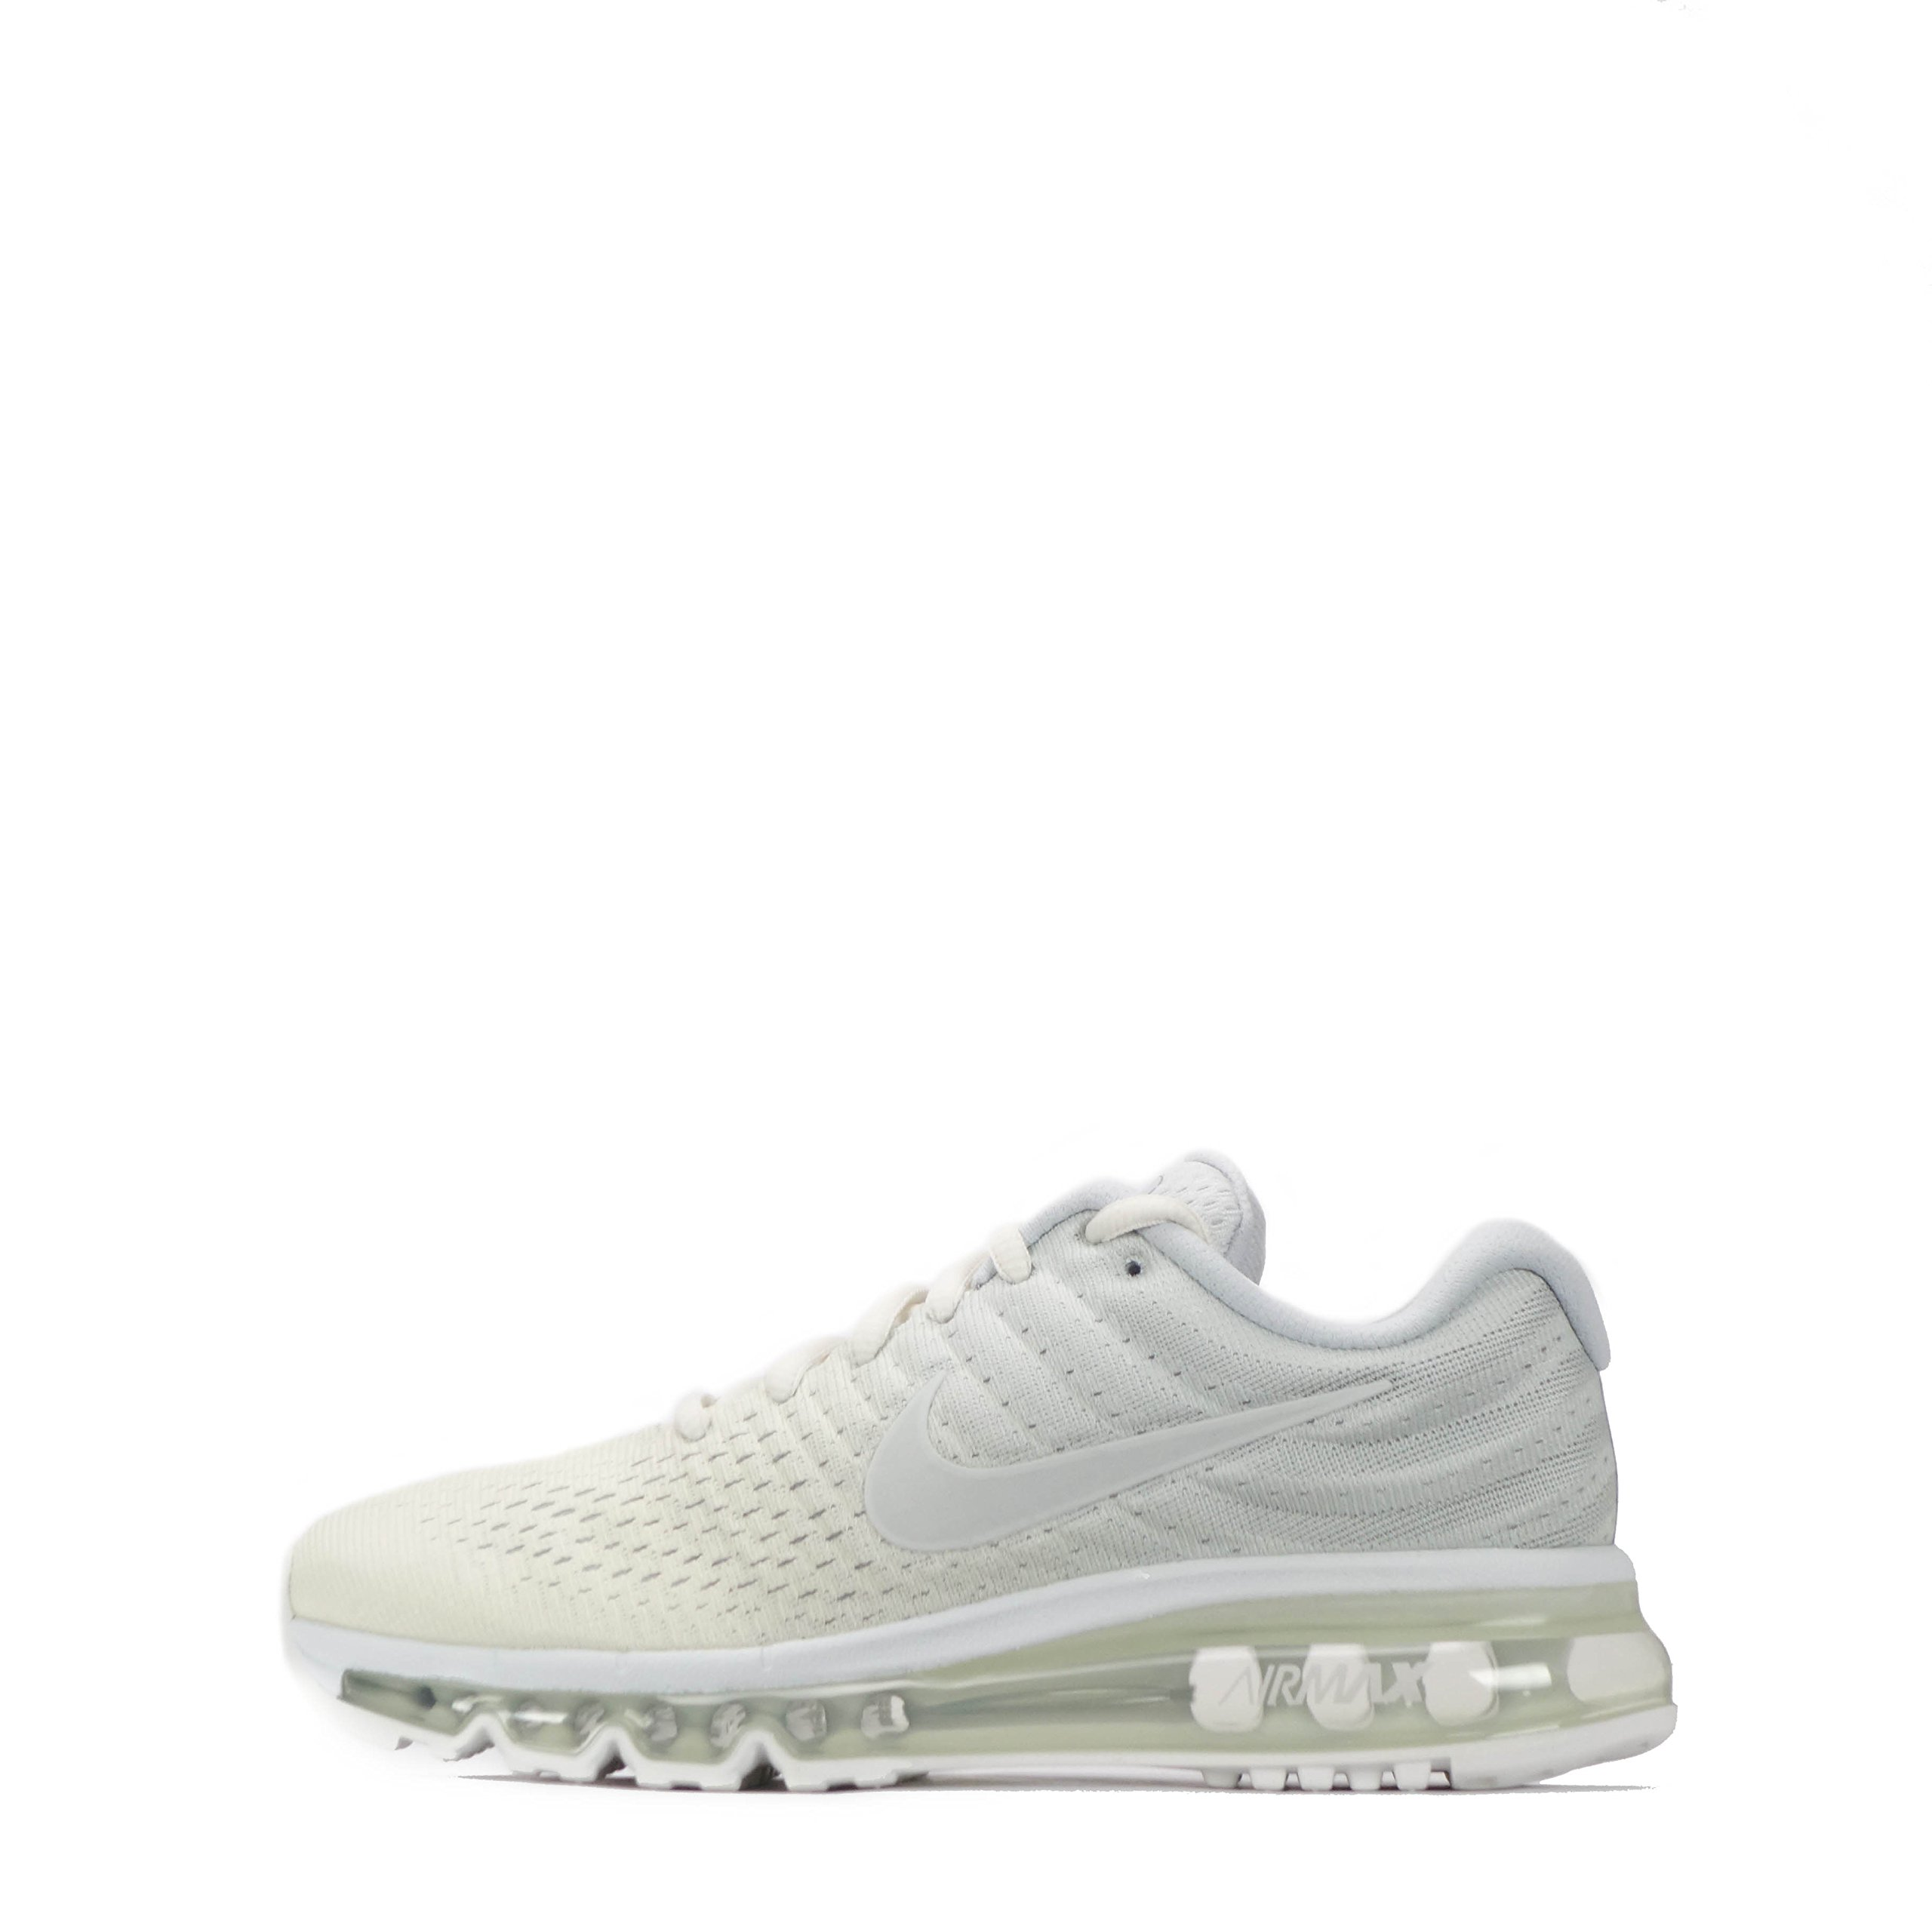 pretty nice aad0f b403d Galleon - Nike Womens Air Max 2017 Running Trainers 849560 Sneakers Shoes ( UK 4 US 6.5 EU 37.5, Phantom Off White 005)